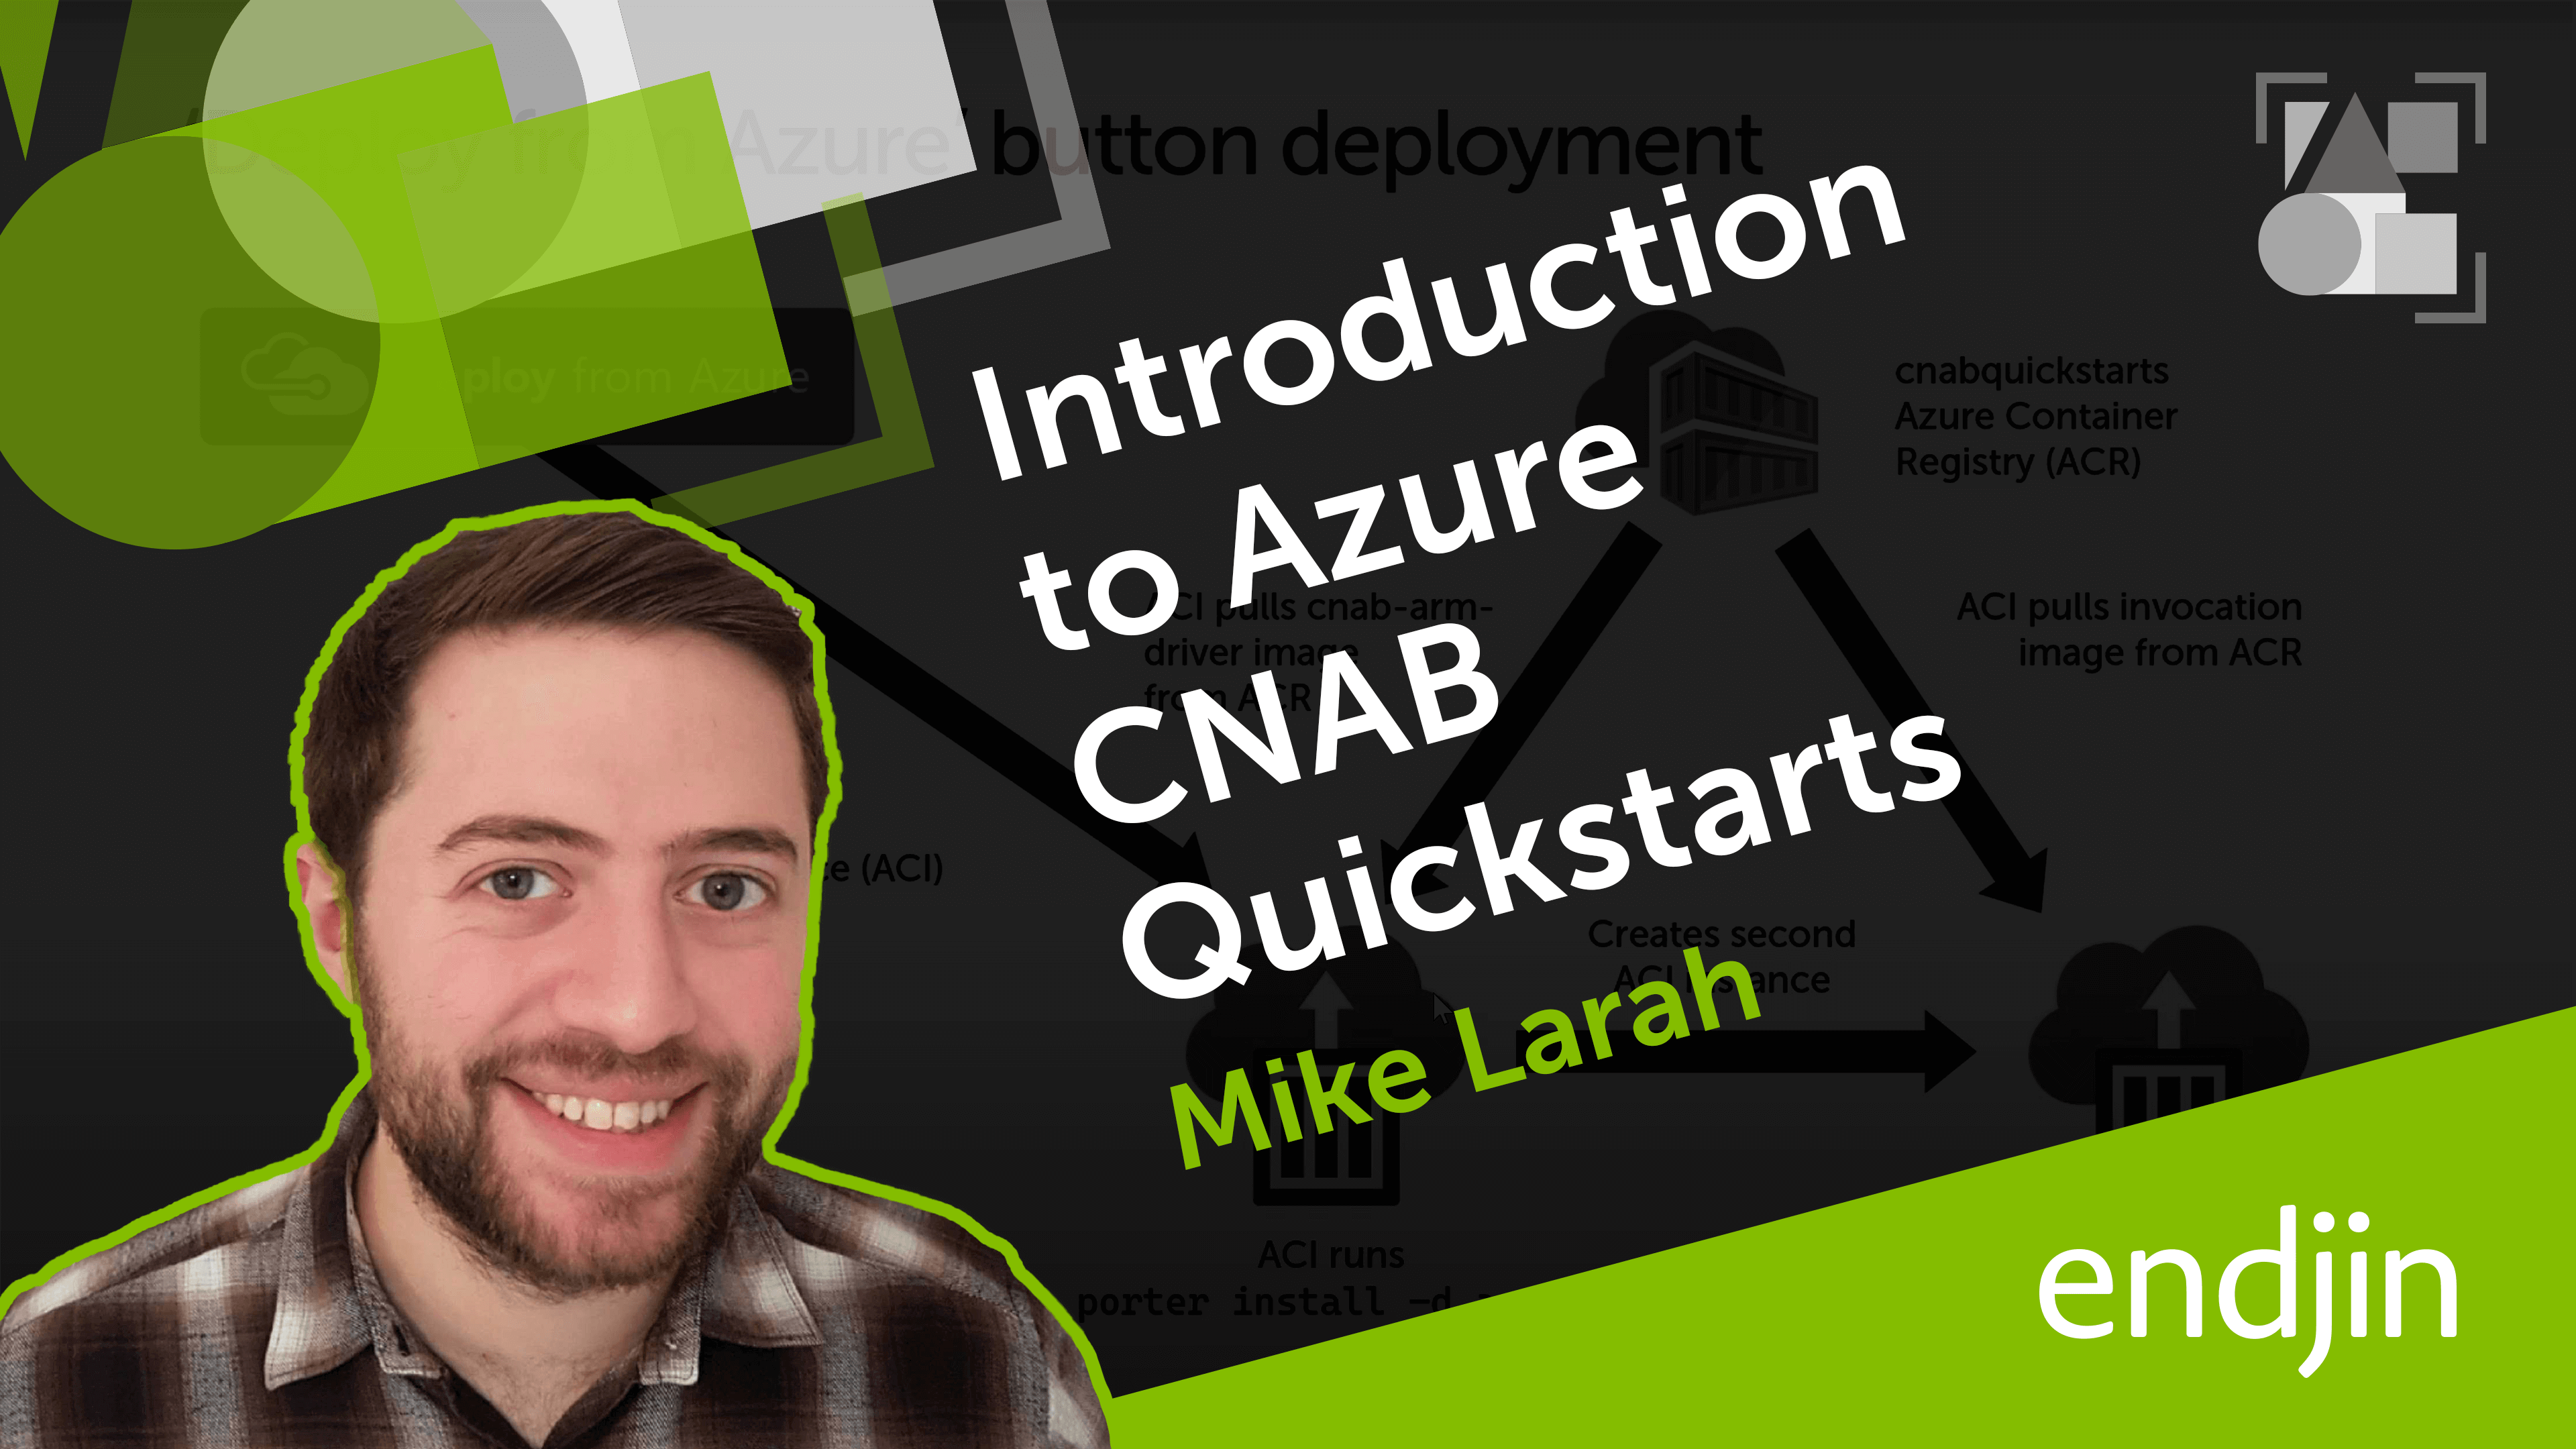 Introduction to Azure CNAB Quickstarts